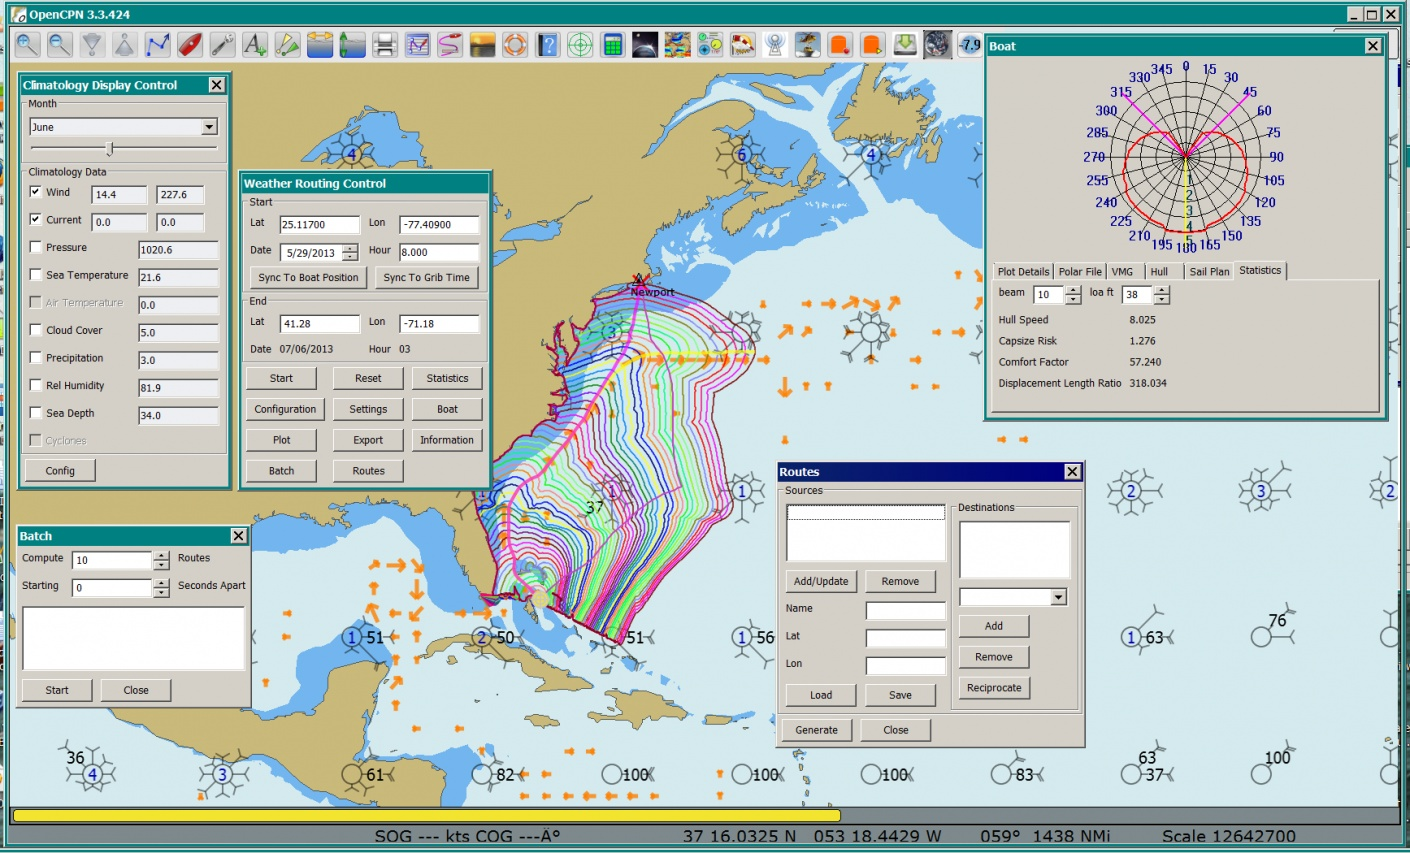 Click image for larger version  Name:Opencpn-Windows-Wx-Rte-Climatology-June-Nassau-Newport-Follows-Gulf-Stream.jpg Views:117 Size:426.6 KB ID:61266